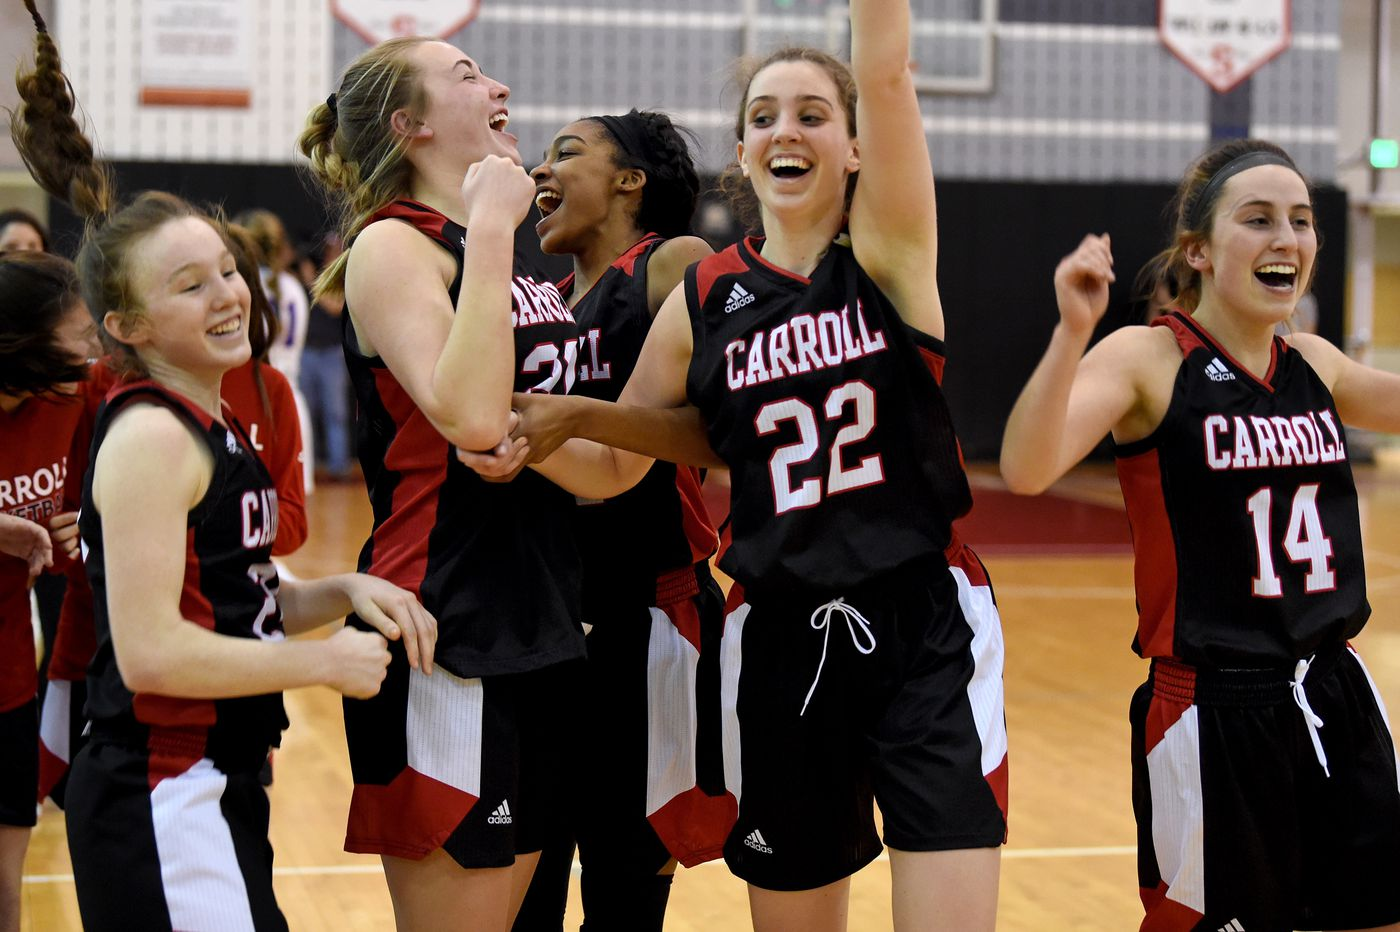 PIAA Class 5A semifinals: Archbishop Carroll girls top Southern Lehigh in OT to reach state championship game